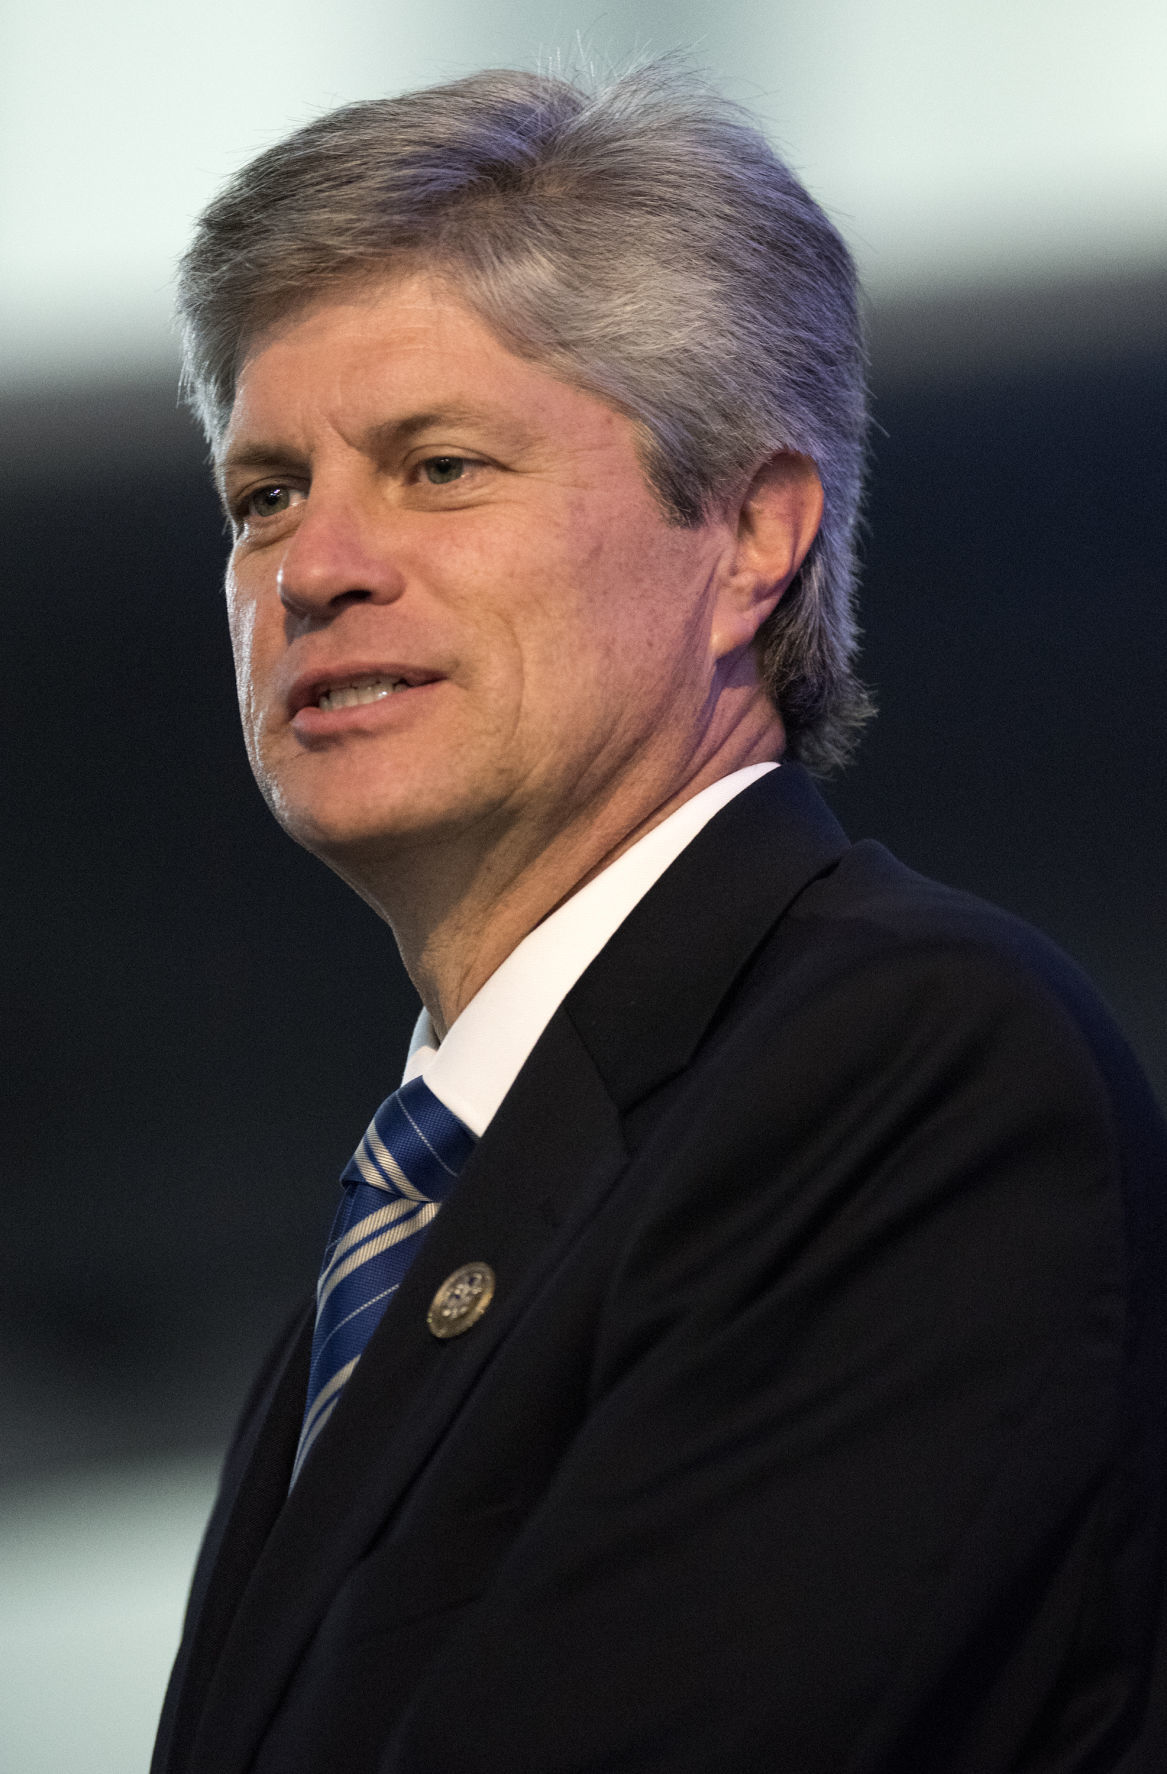 Rep. Jeff Fortenberry